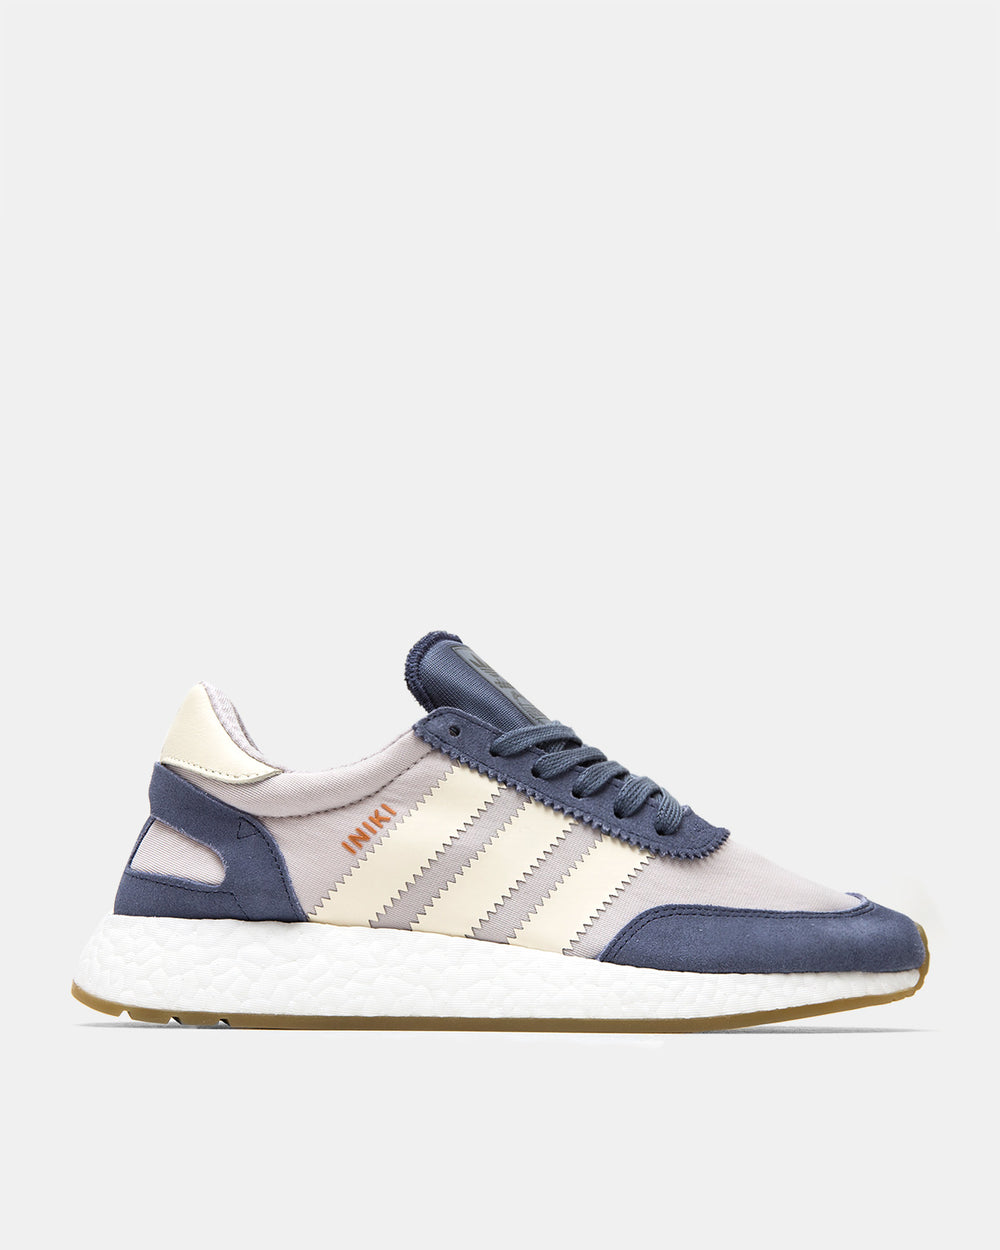 adidas - Women's Iniki Runner (Super Purple | Cream White)